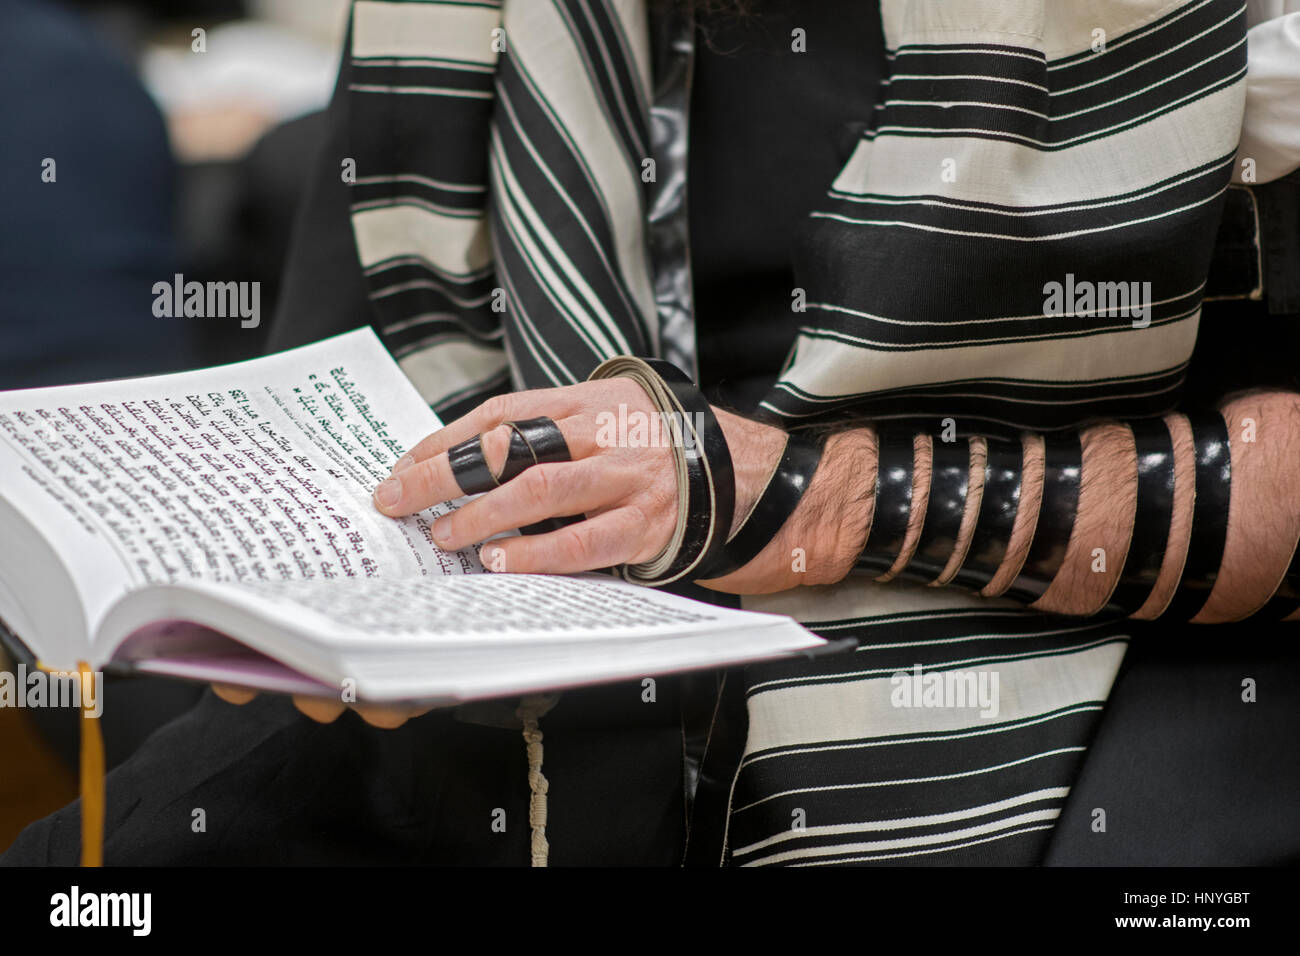 An othodox Jewish man wearing phylacteries at a weekday morning service in a synagogue in Crown Heights, Brooklyn, - Stock Image